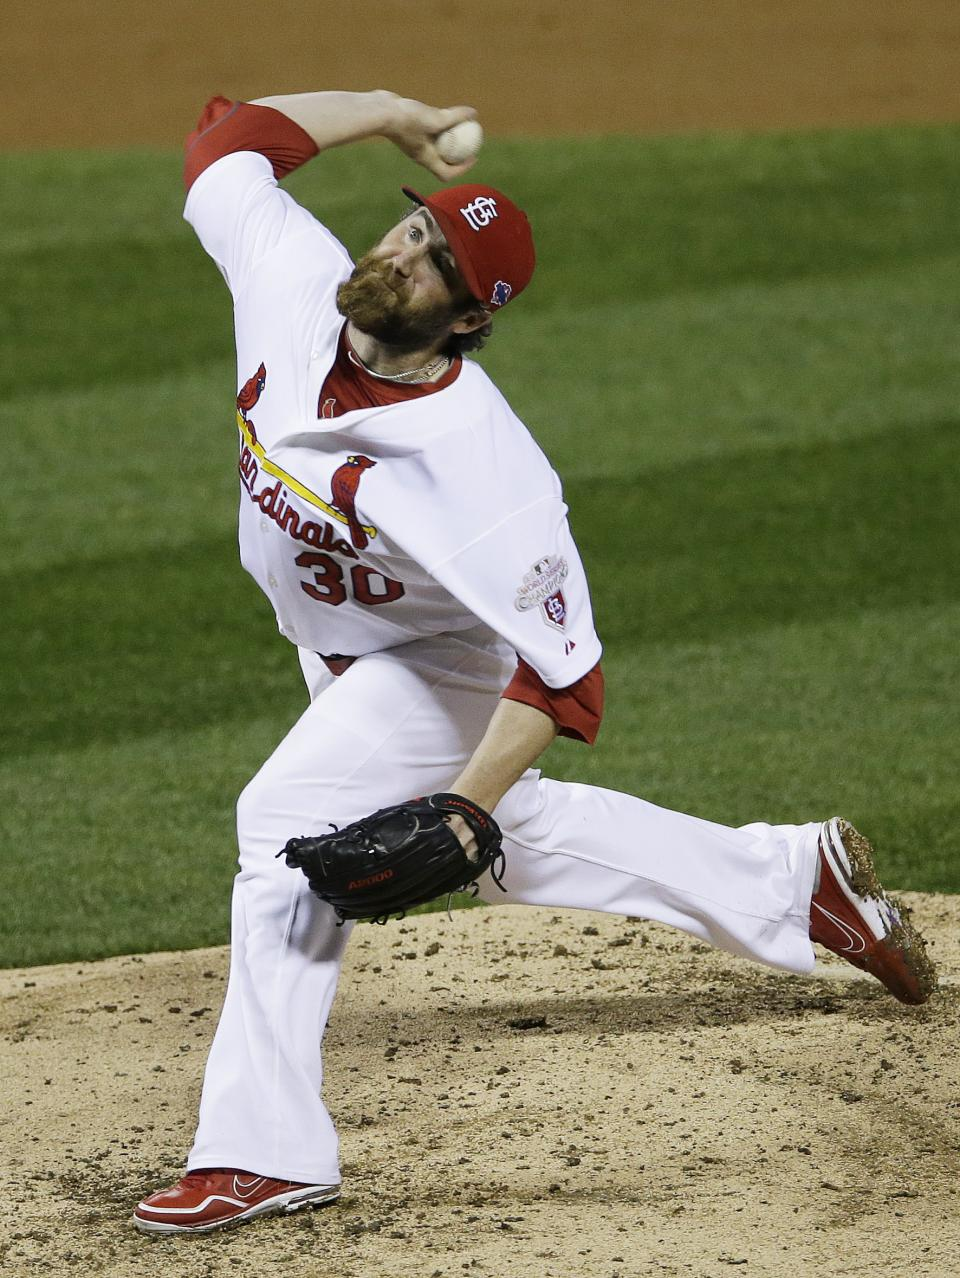 St. Louis Cardinals relief pitcher Jason Motte (30) works during the ninth inning of Game 3 of baseball's National League championship series against the San Francisco Giants, Wednesday, Oct. 17, 2012, in St. Louis. The Cardinals won 3-1. (AP Photo/Patrick Semansky)